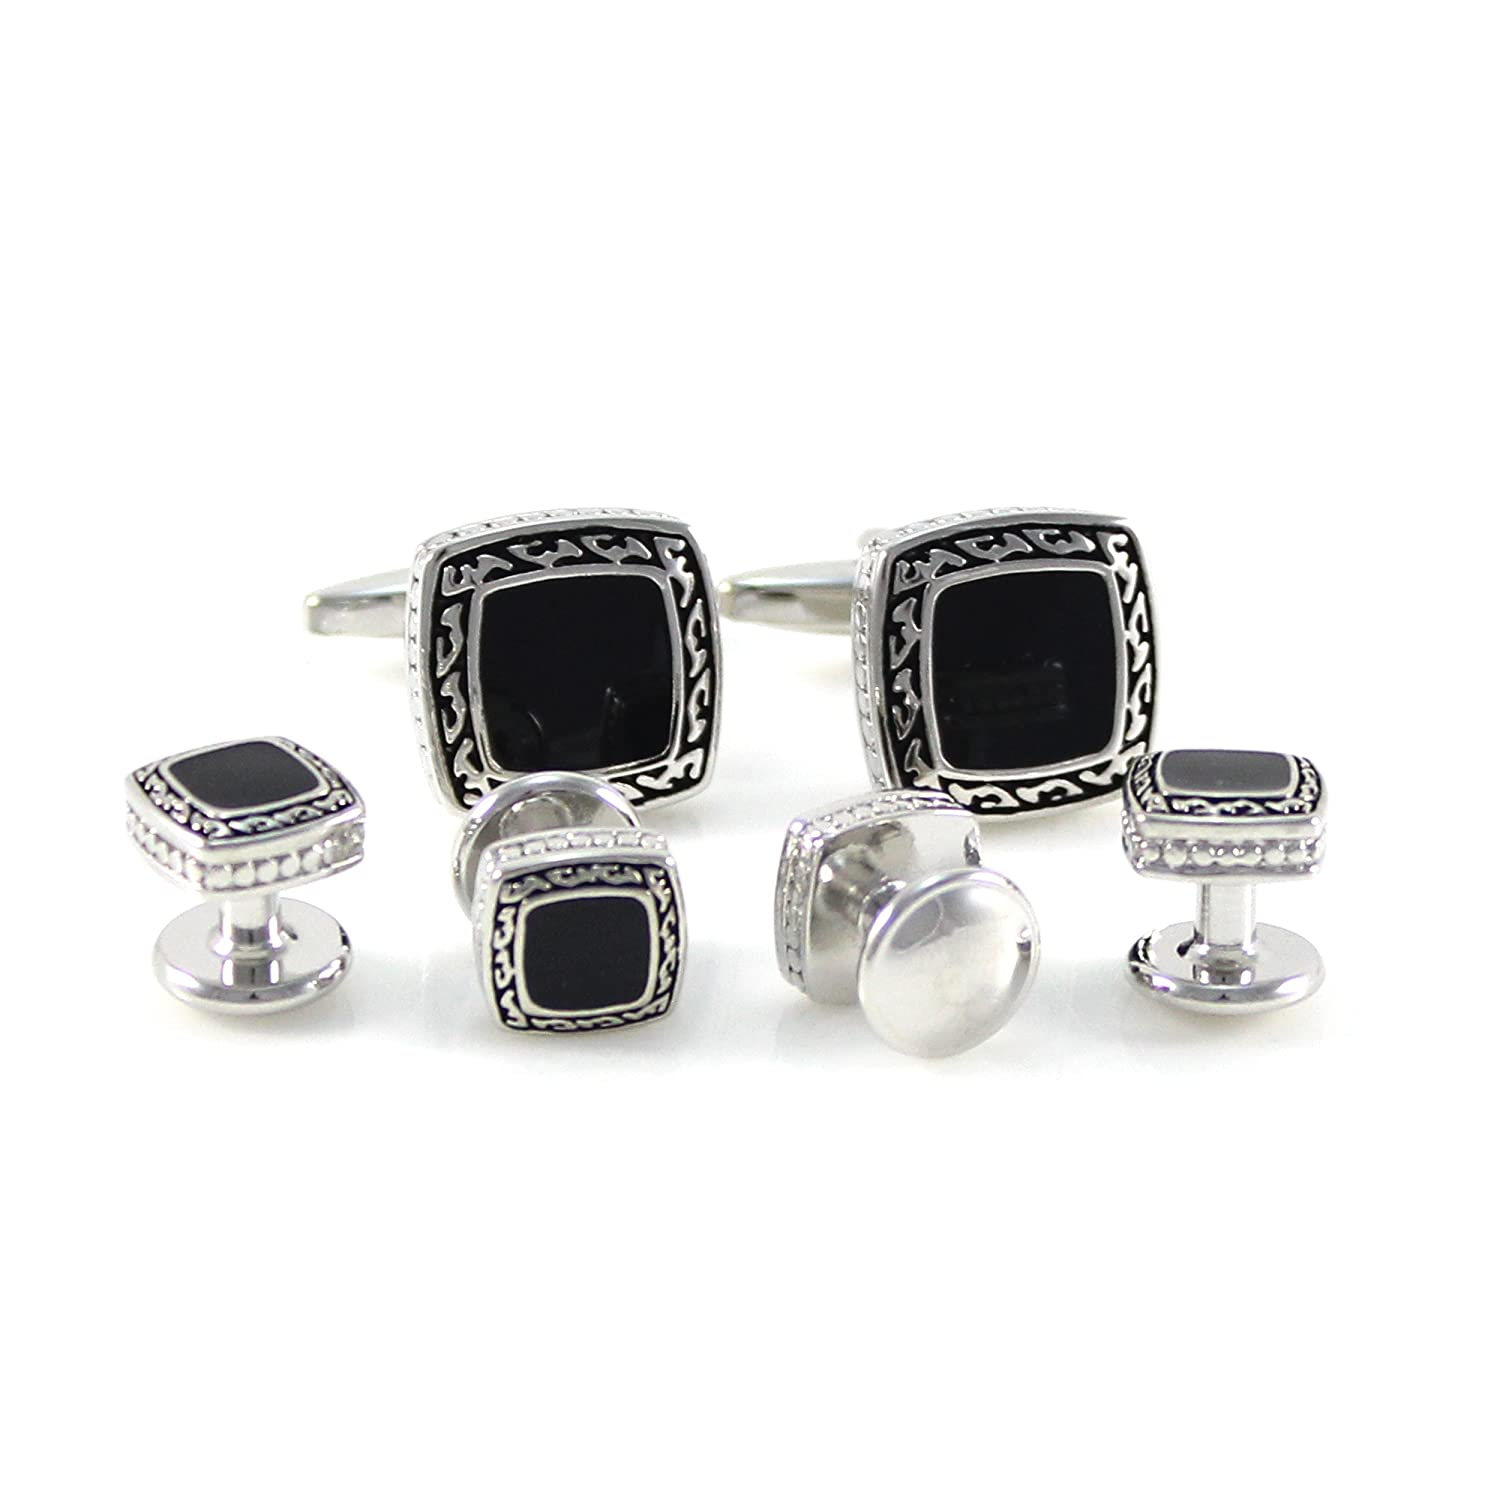 MENDEPOT Antique Silver Soft Square Cuff Link And Shirt Studs Formal Wear Set With Box MD0750